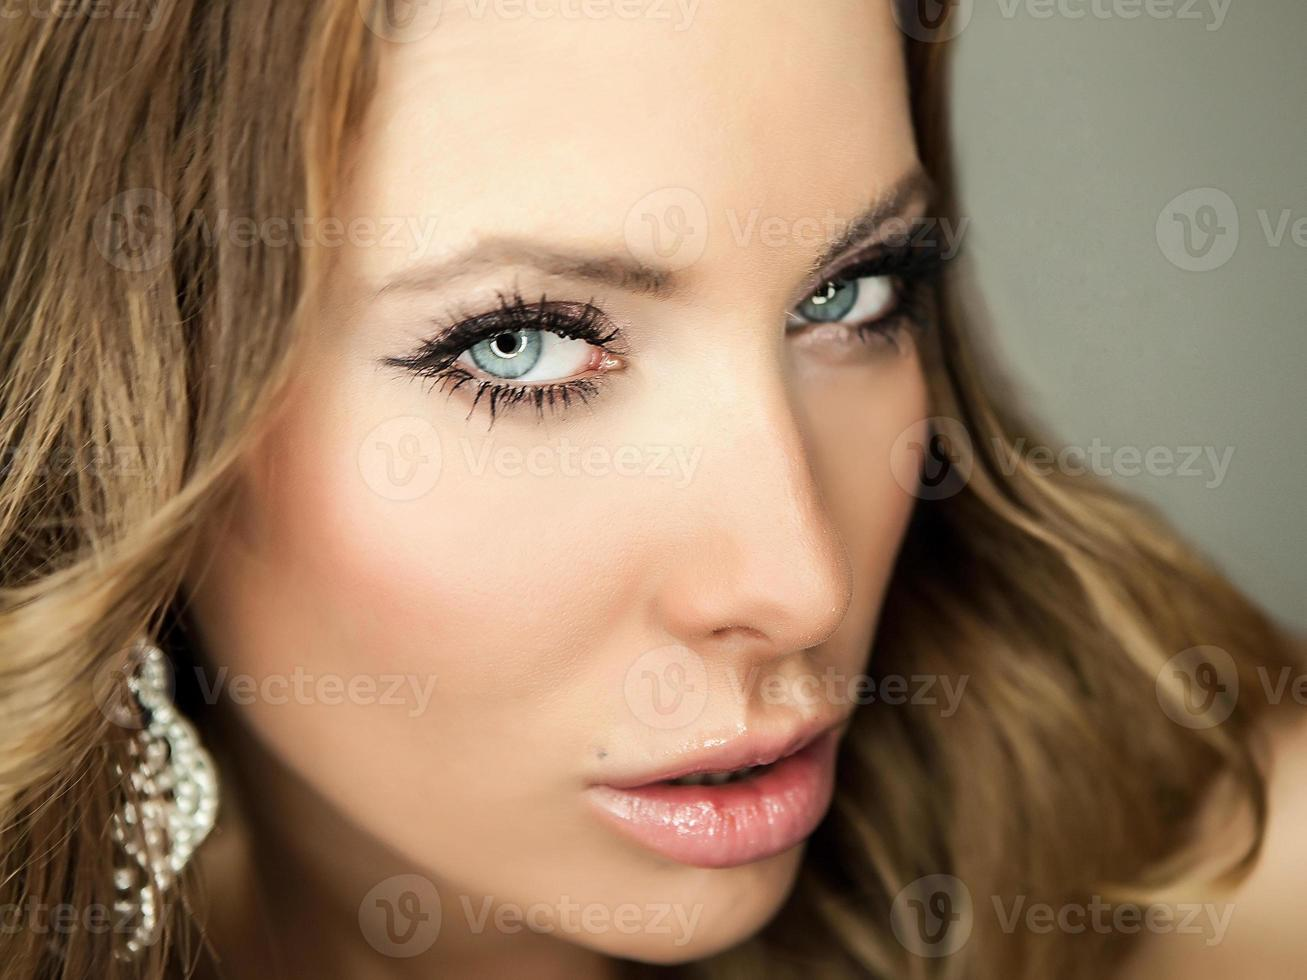 Portrait of a young beauty. Close-up Photo. photo